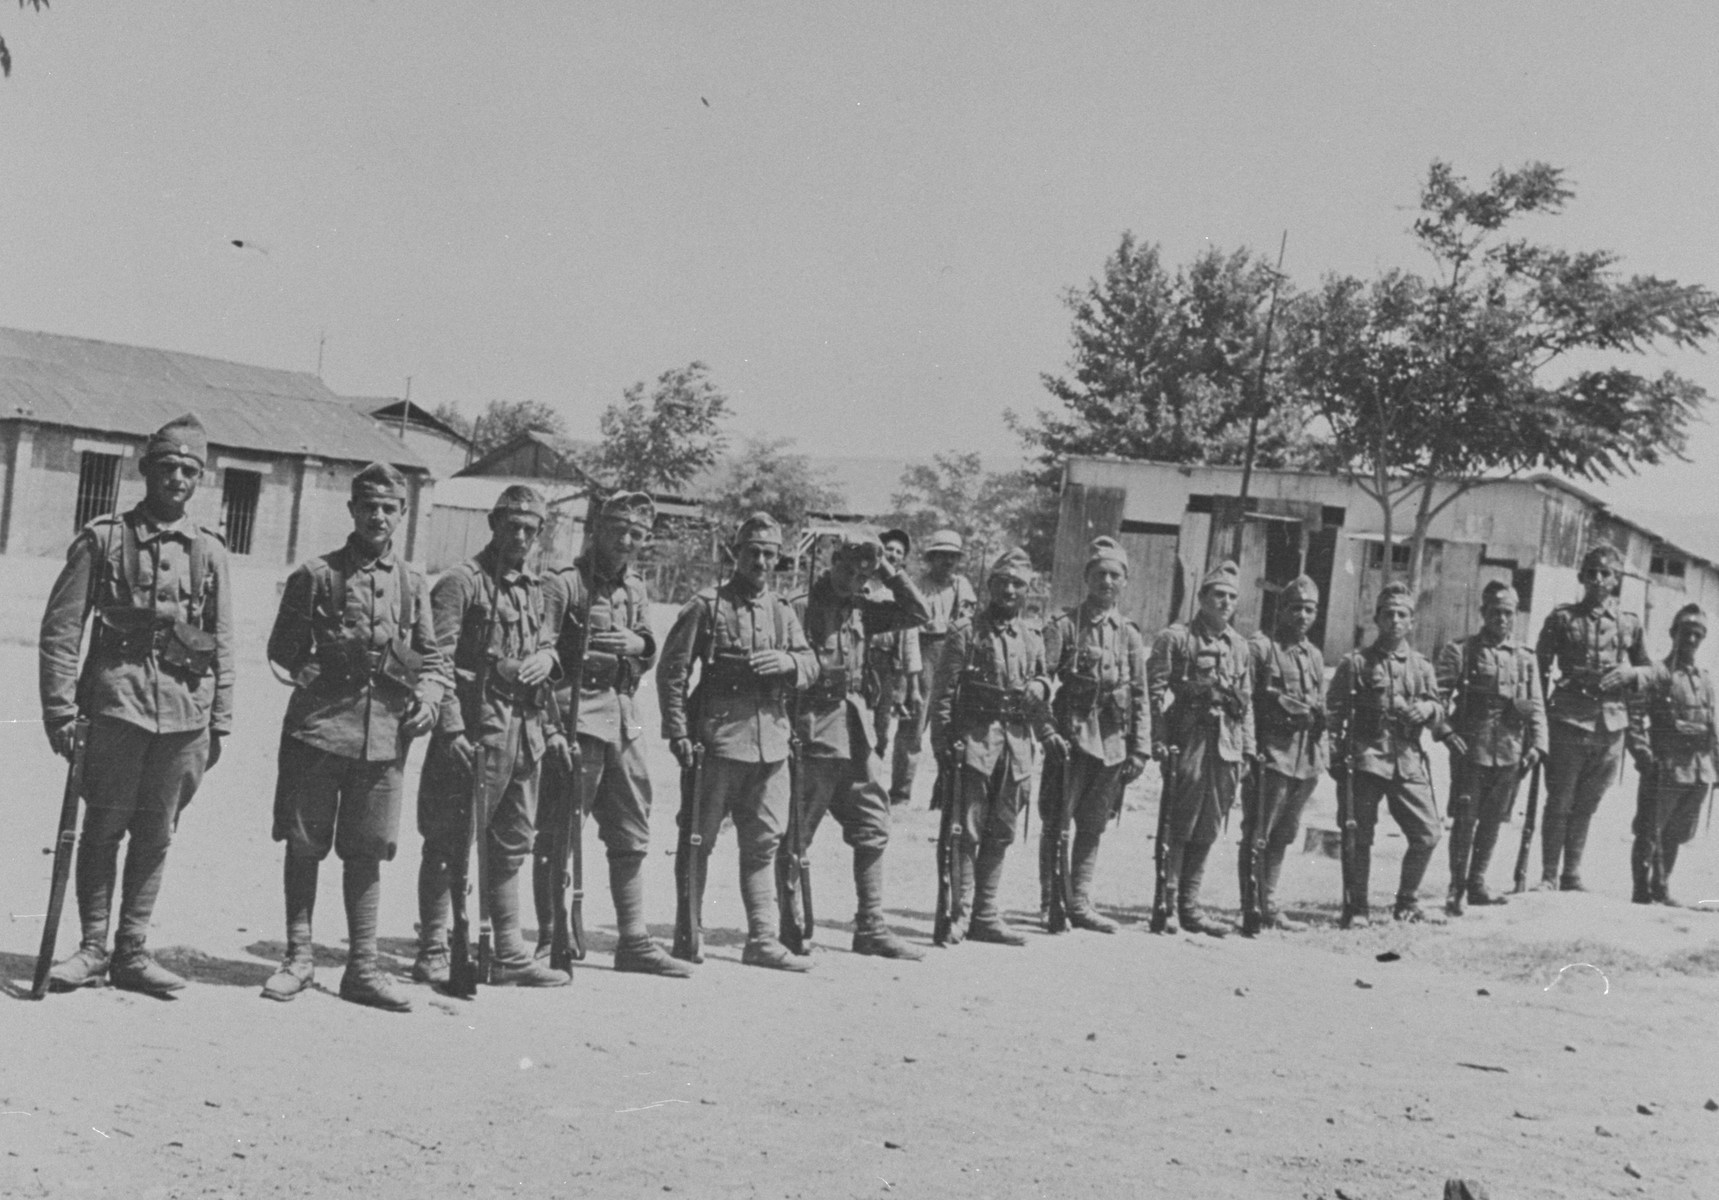 Greek soldiers guard the barracks that were left intact after the pogrom of June 29, 1931.